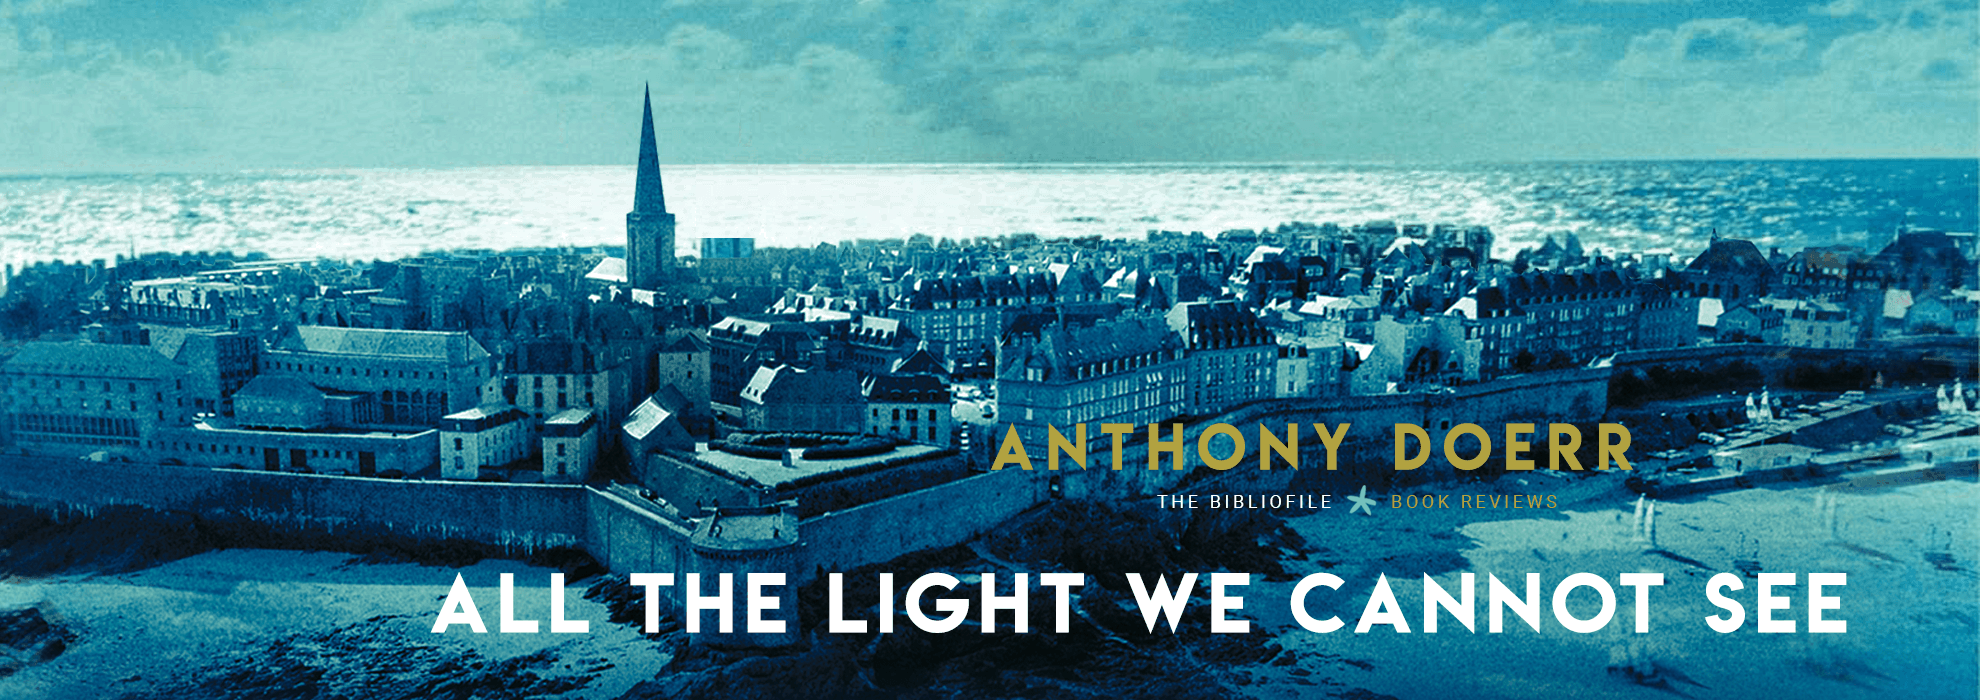 review all the light we cannot see anthony doerr